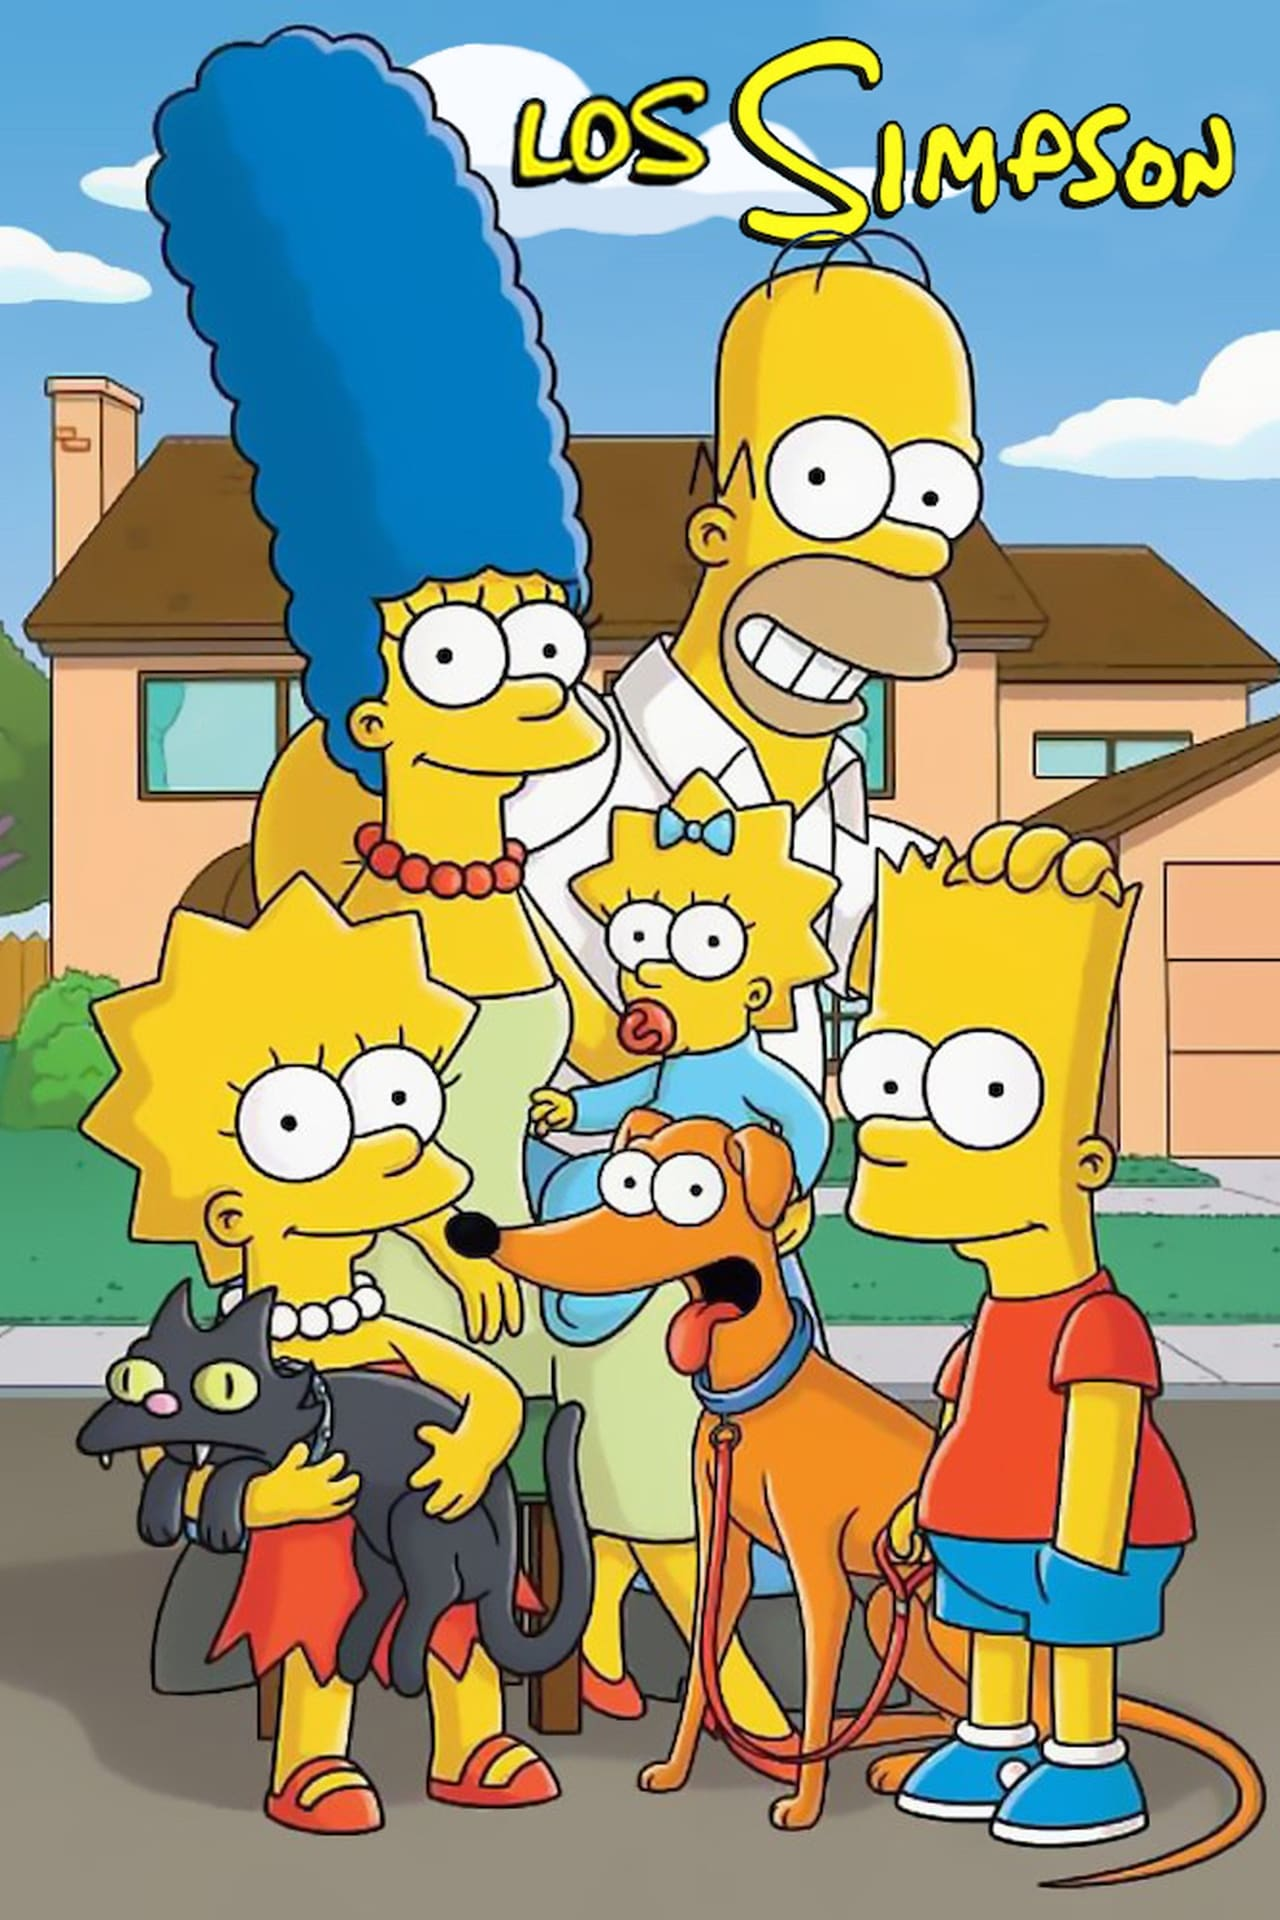 Los Simpson - Season 1 Episode 3 : La odisea de Homer